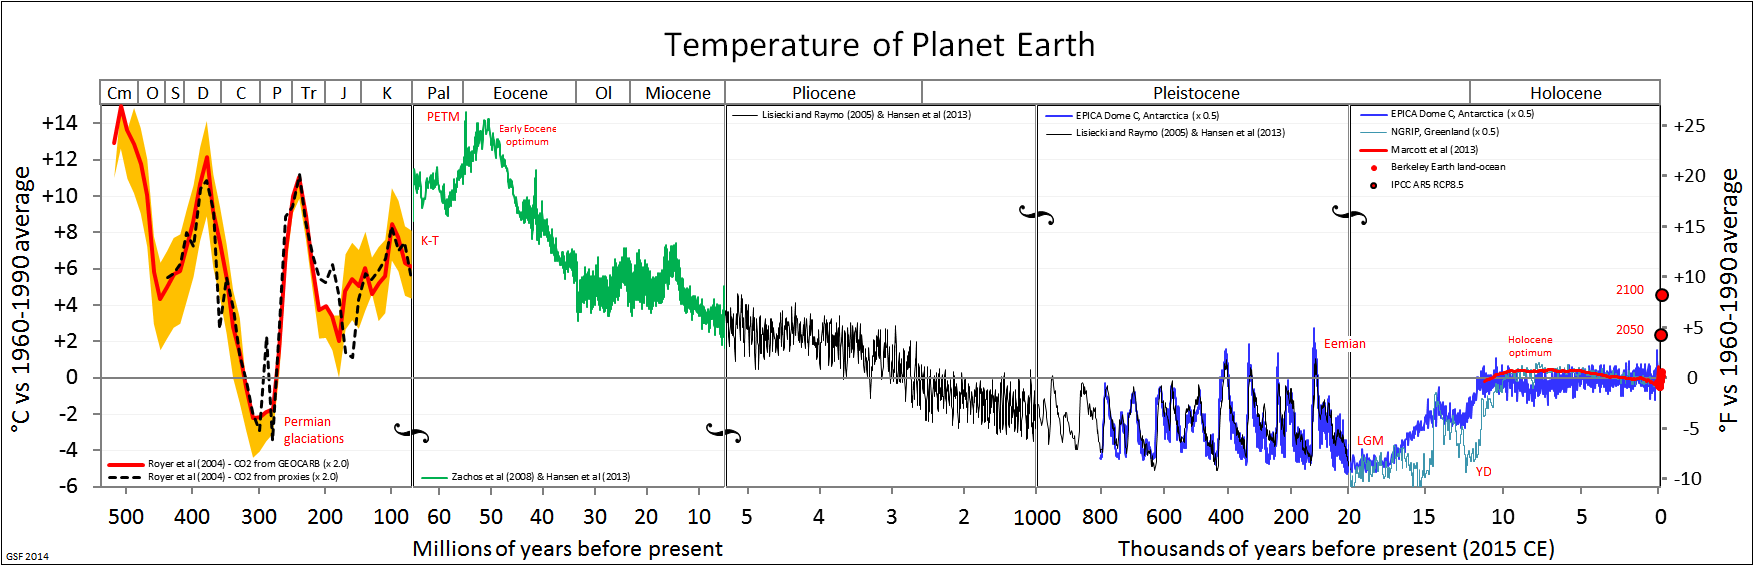 Palaeotemperature graphs compressed together